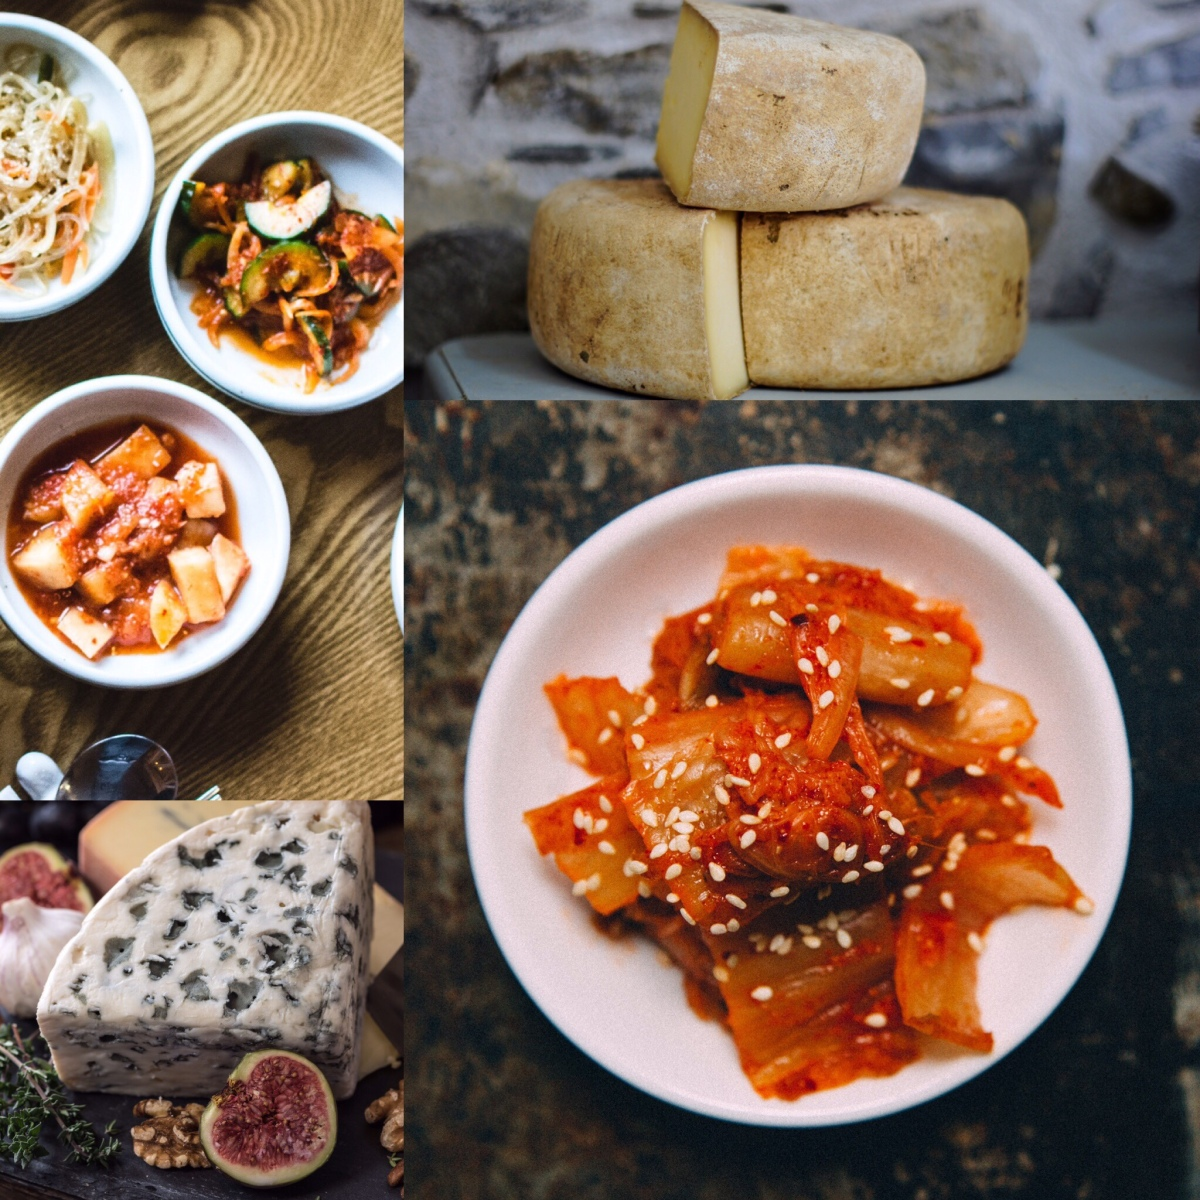 Kimchi or cheese? You must choose only one!